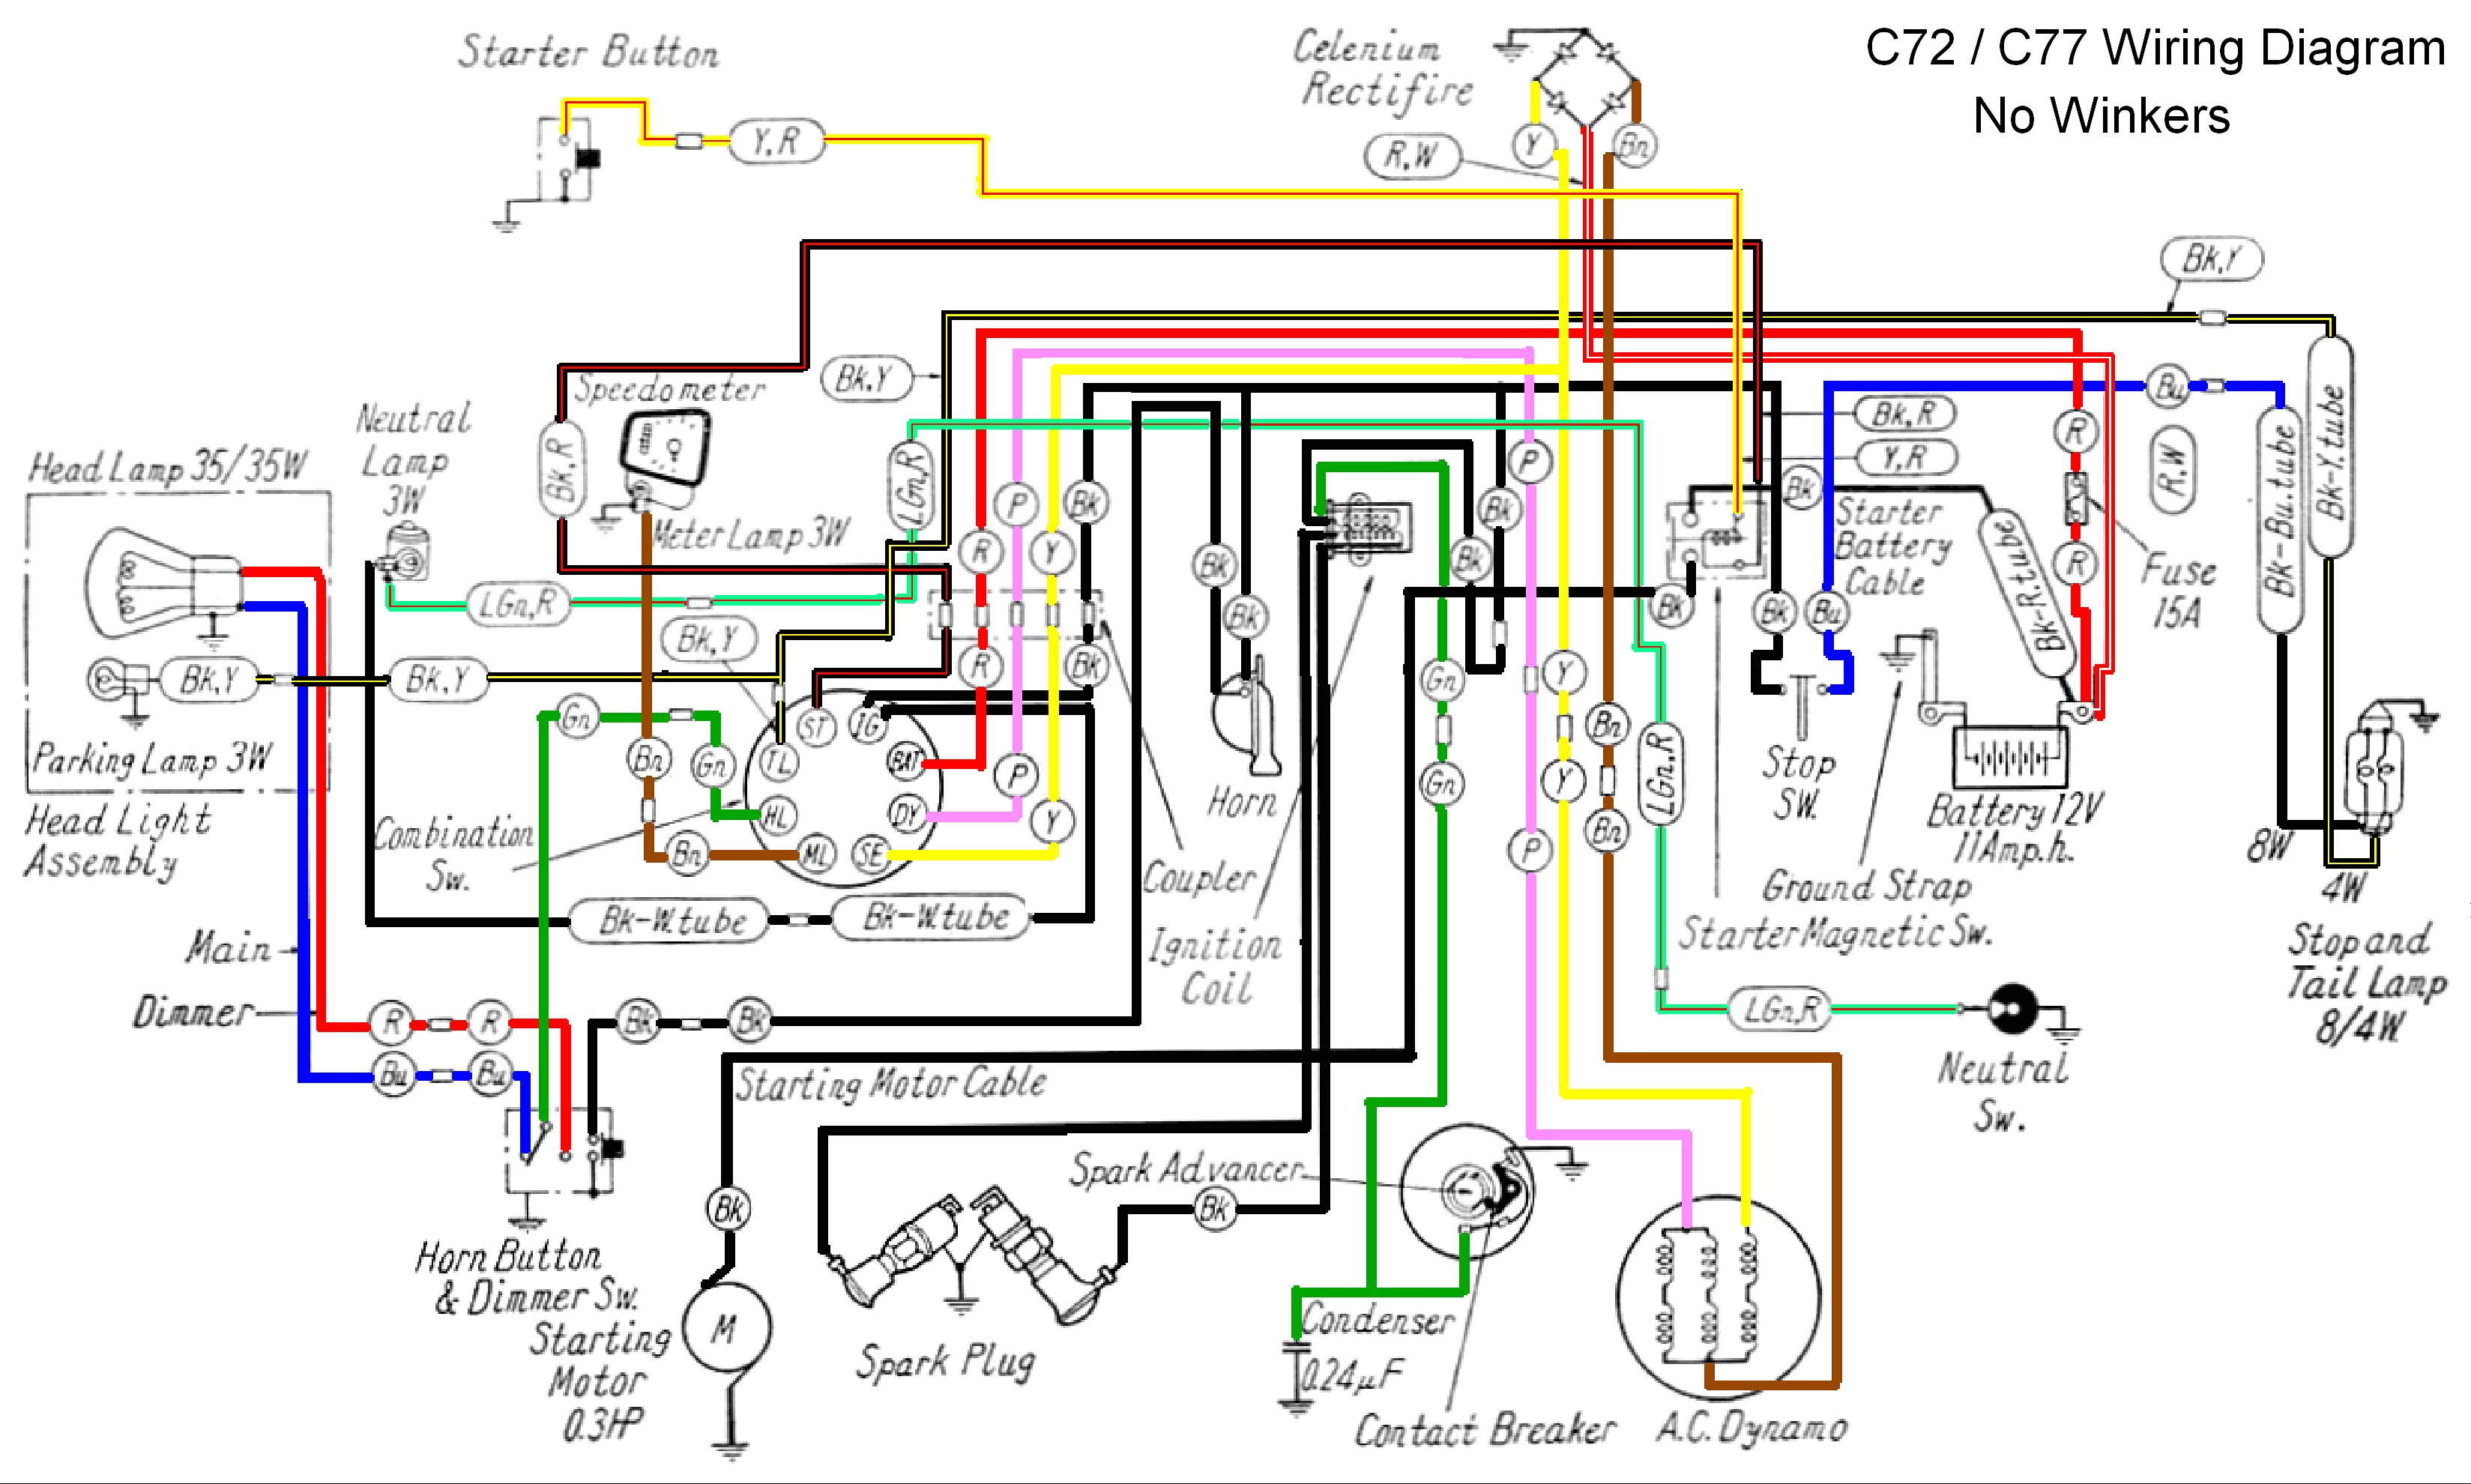 hight resolution of 883 2004 wiring diagram wiring library gmc fuse box diagrams harley wiring diagram for dummies detailed